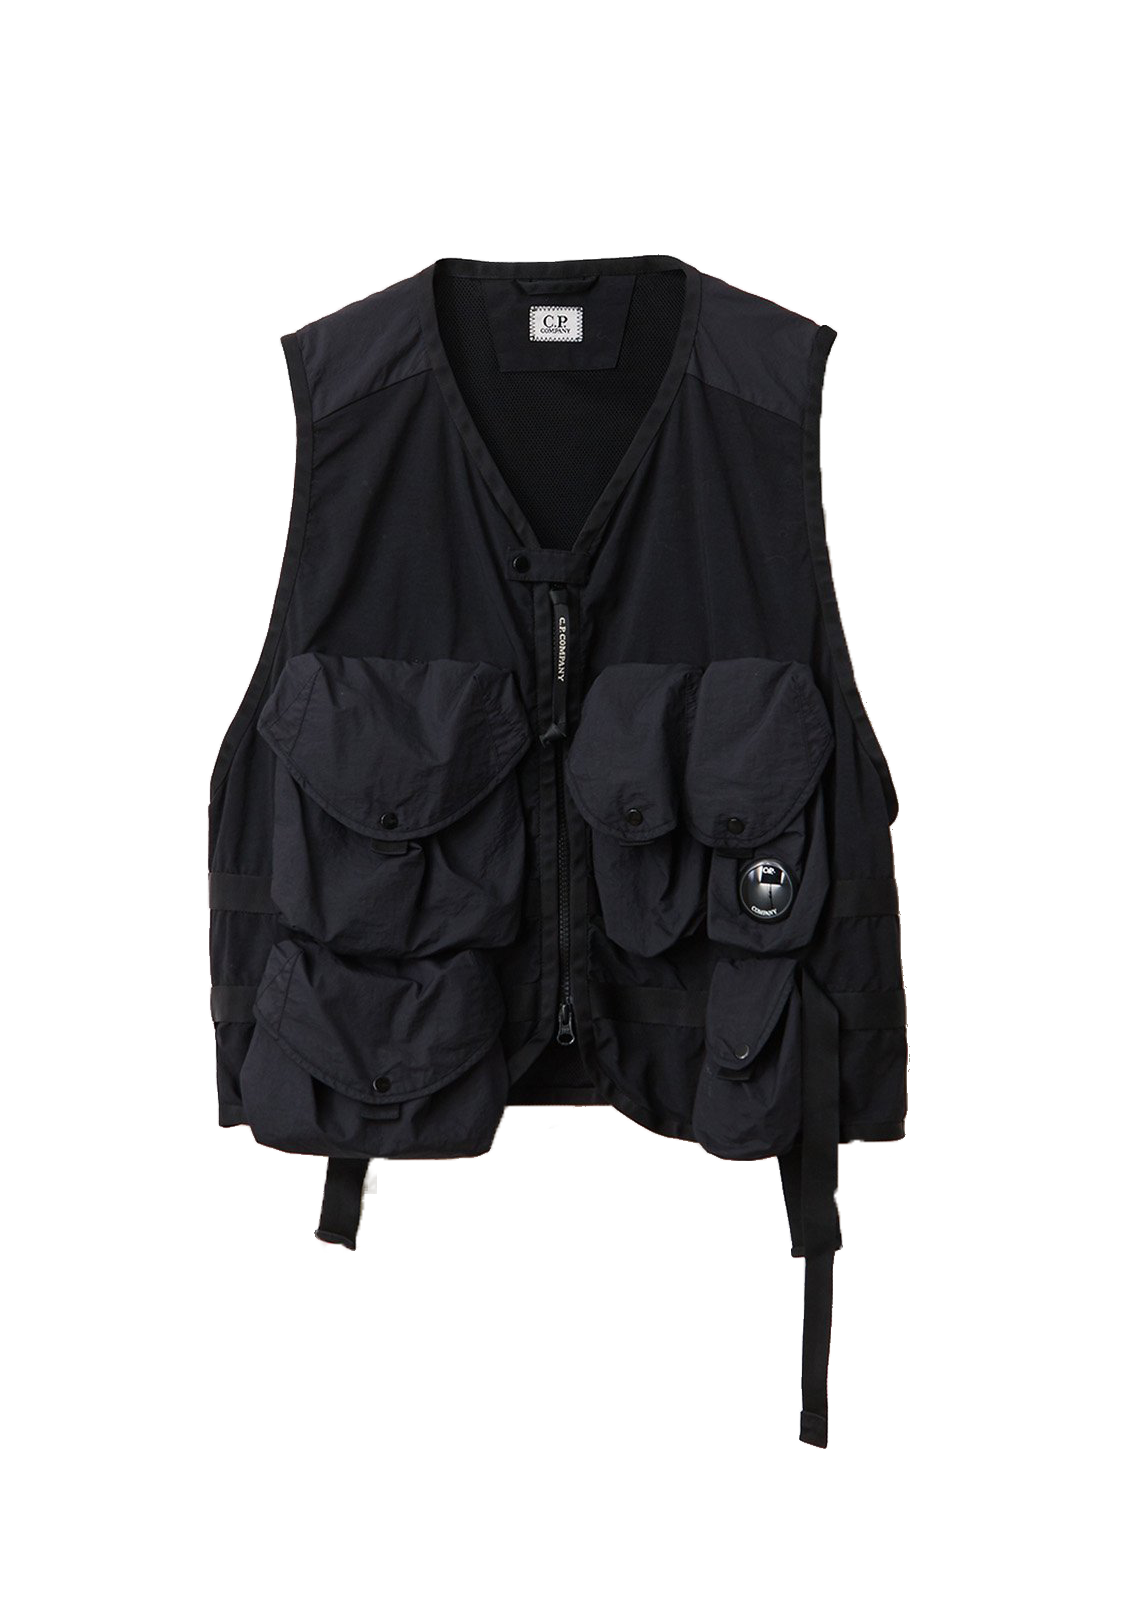 Taylon P Mixed Urban Protection Series Utility Vest - Black